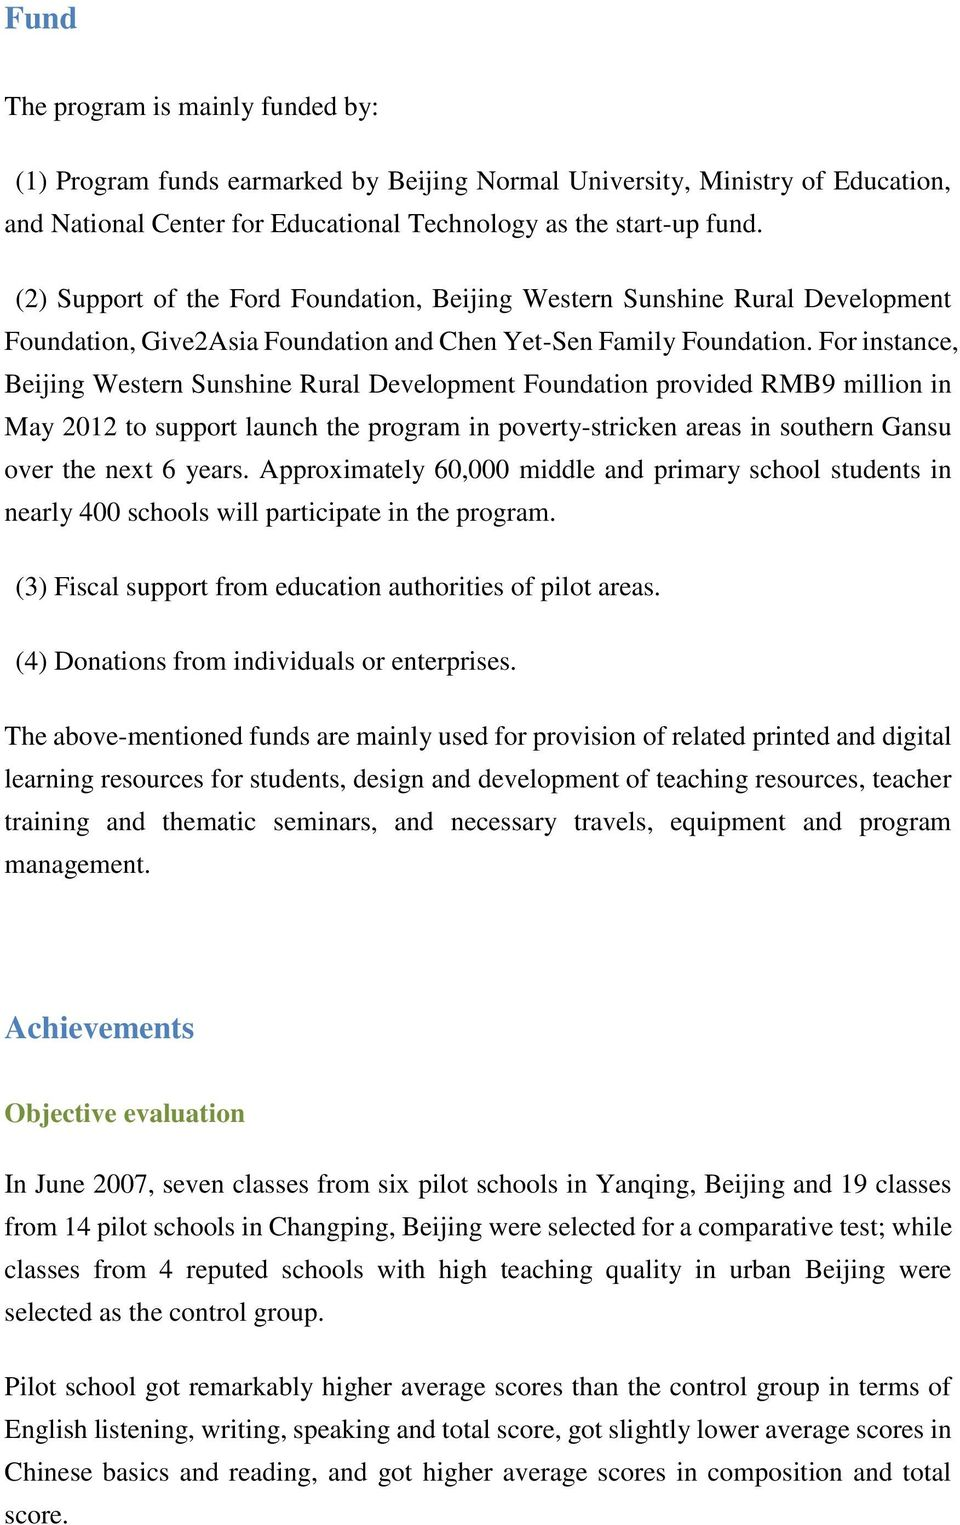 For instance, Beijing Western Sunshine Rural Development Foundation provided RMB9 million in May 2012 to support launch the program in poverty-stricken areas in southern Gansu over the next 6 years.